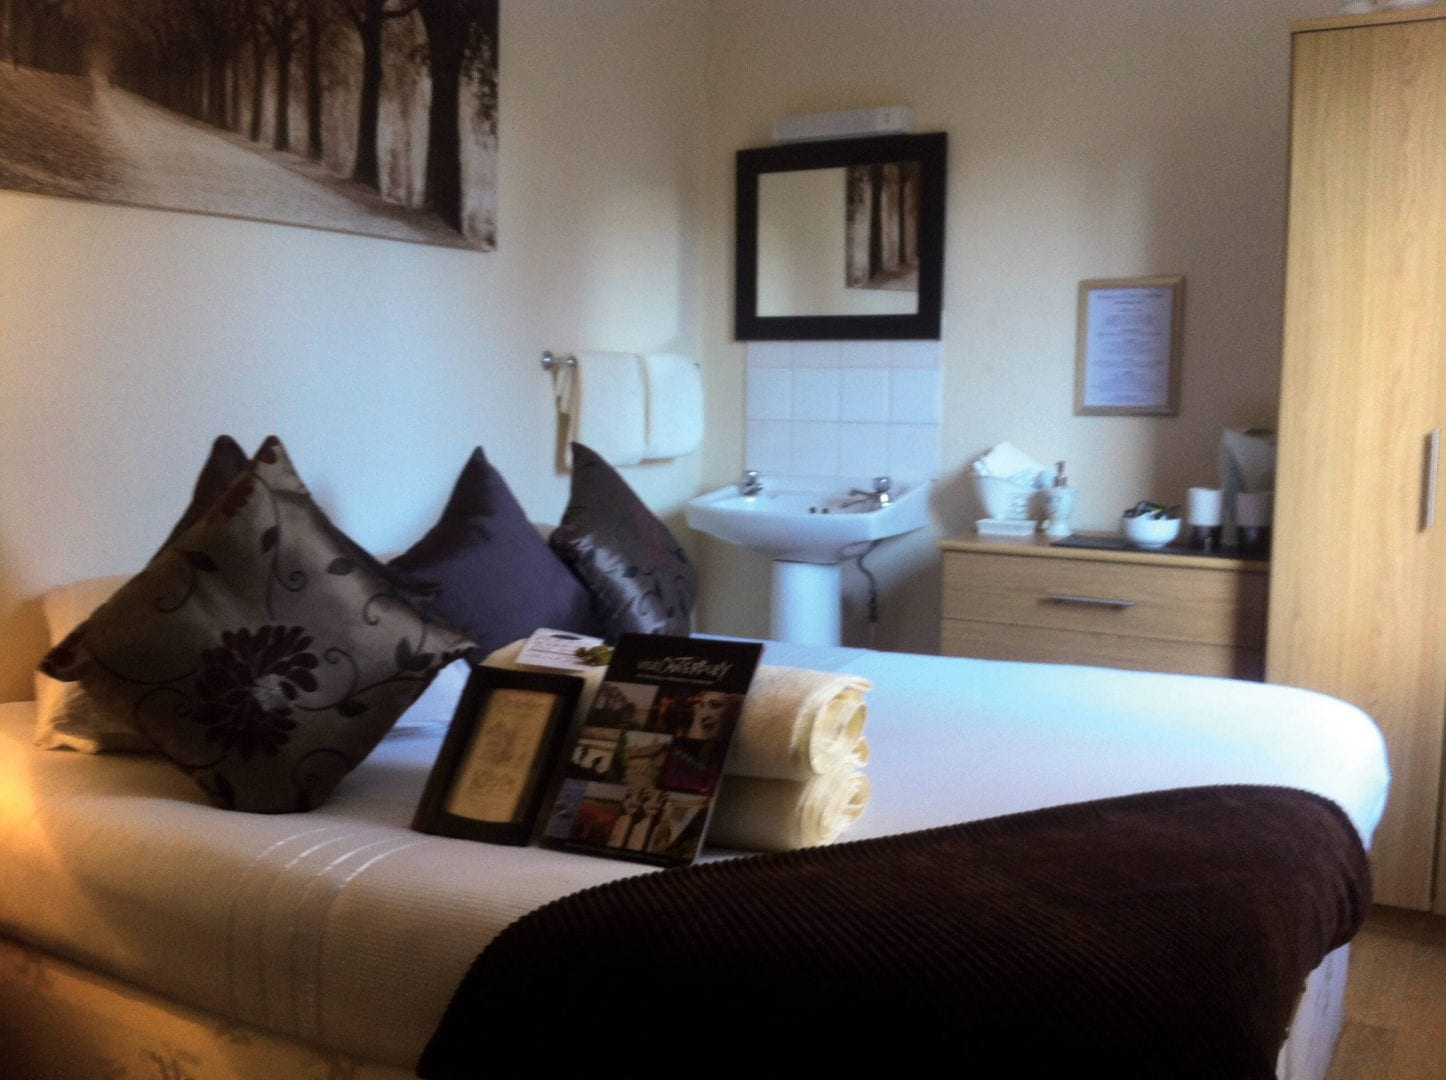 Kips Canterbury - independent hostel - self catered